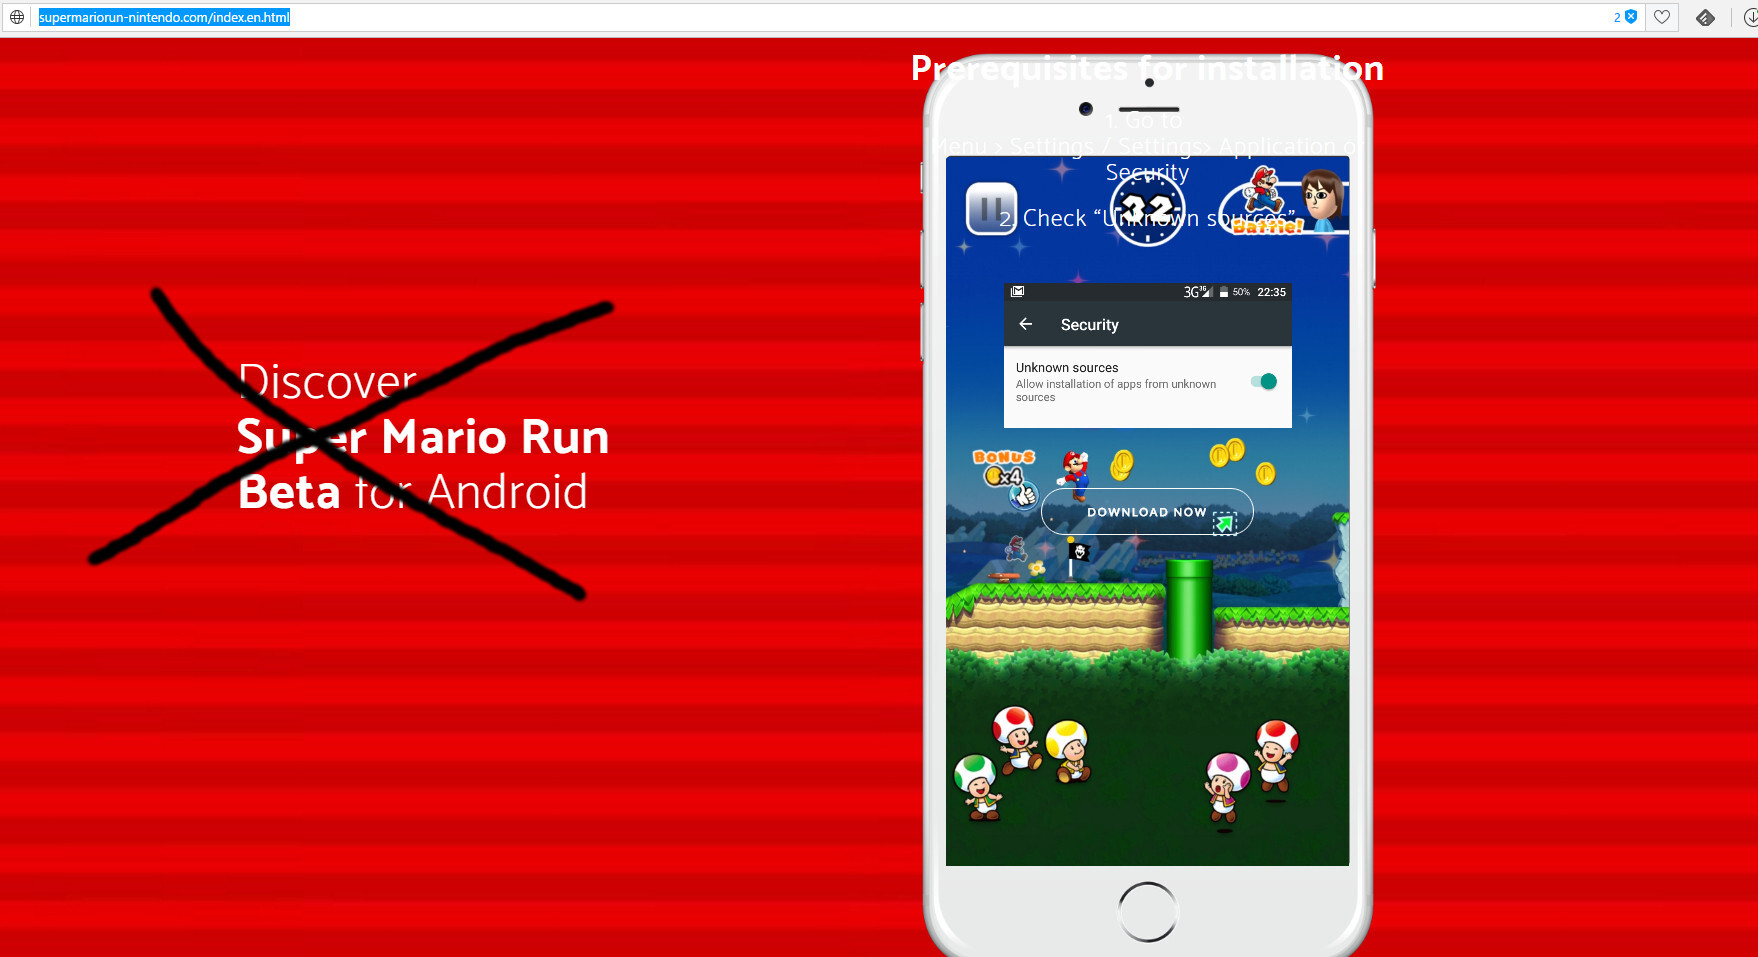 DO NOT download Super Mario Run beta for Android from